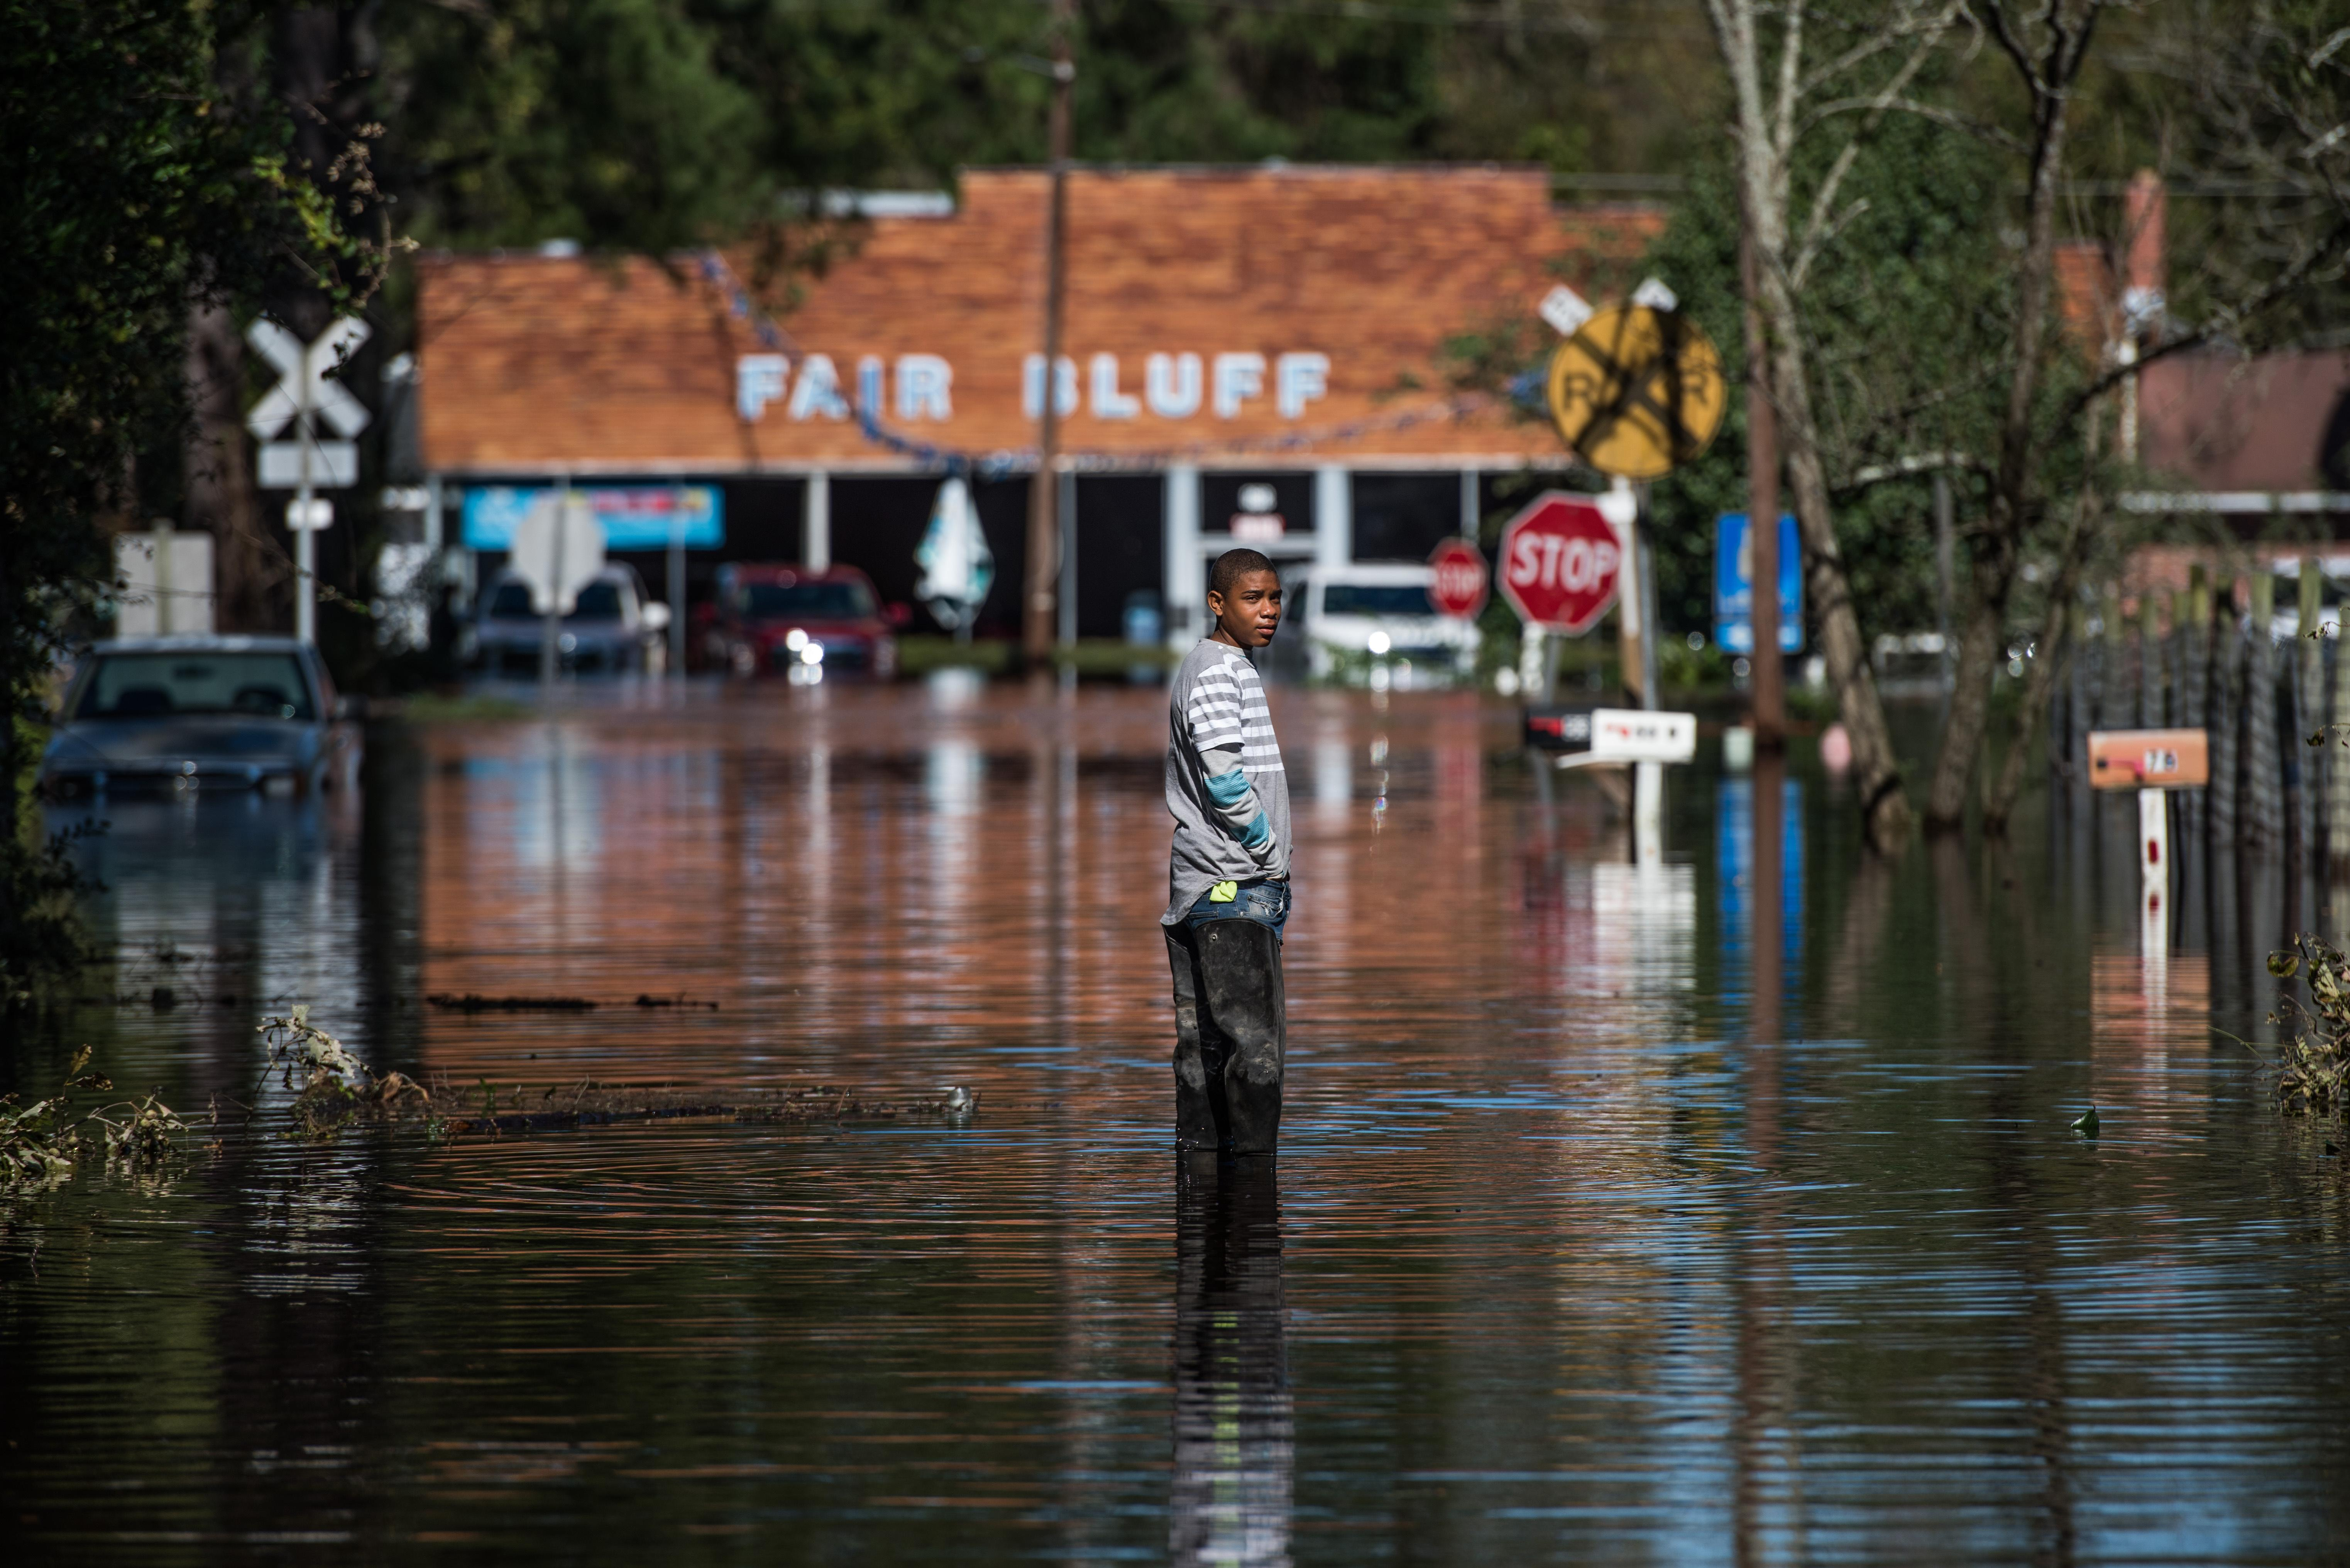 The town fighting the climate crisis to stay afloat, one hurricane at at time